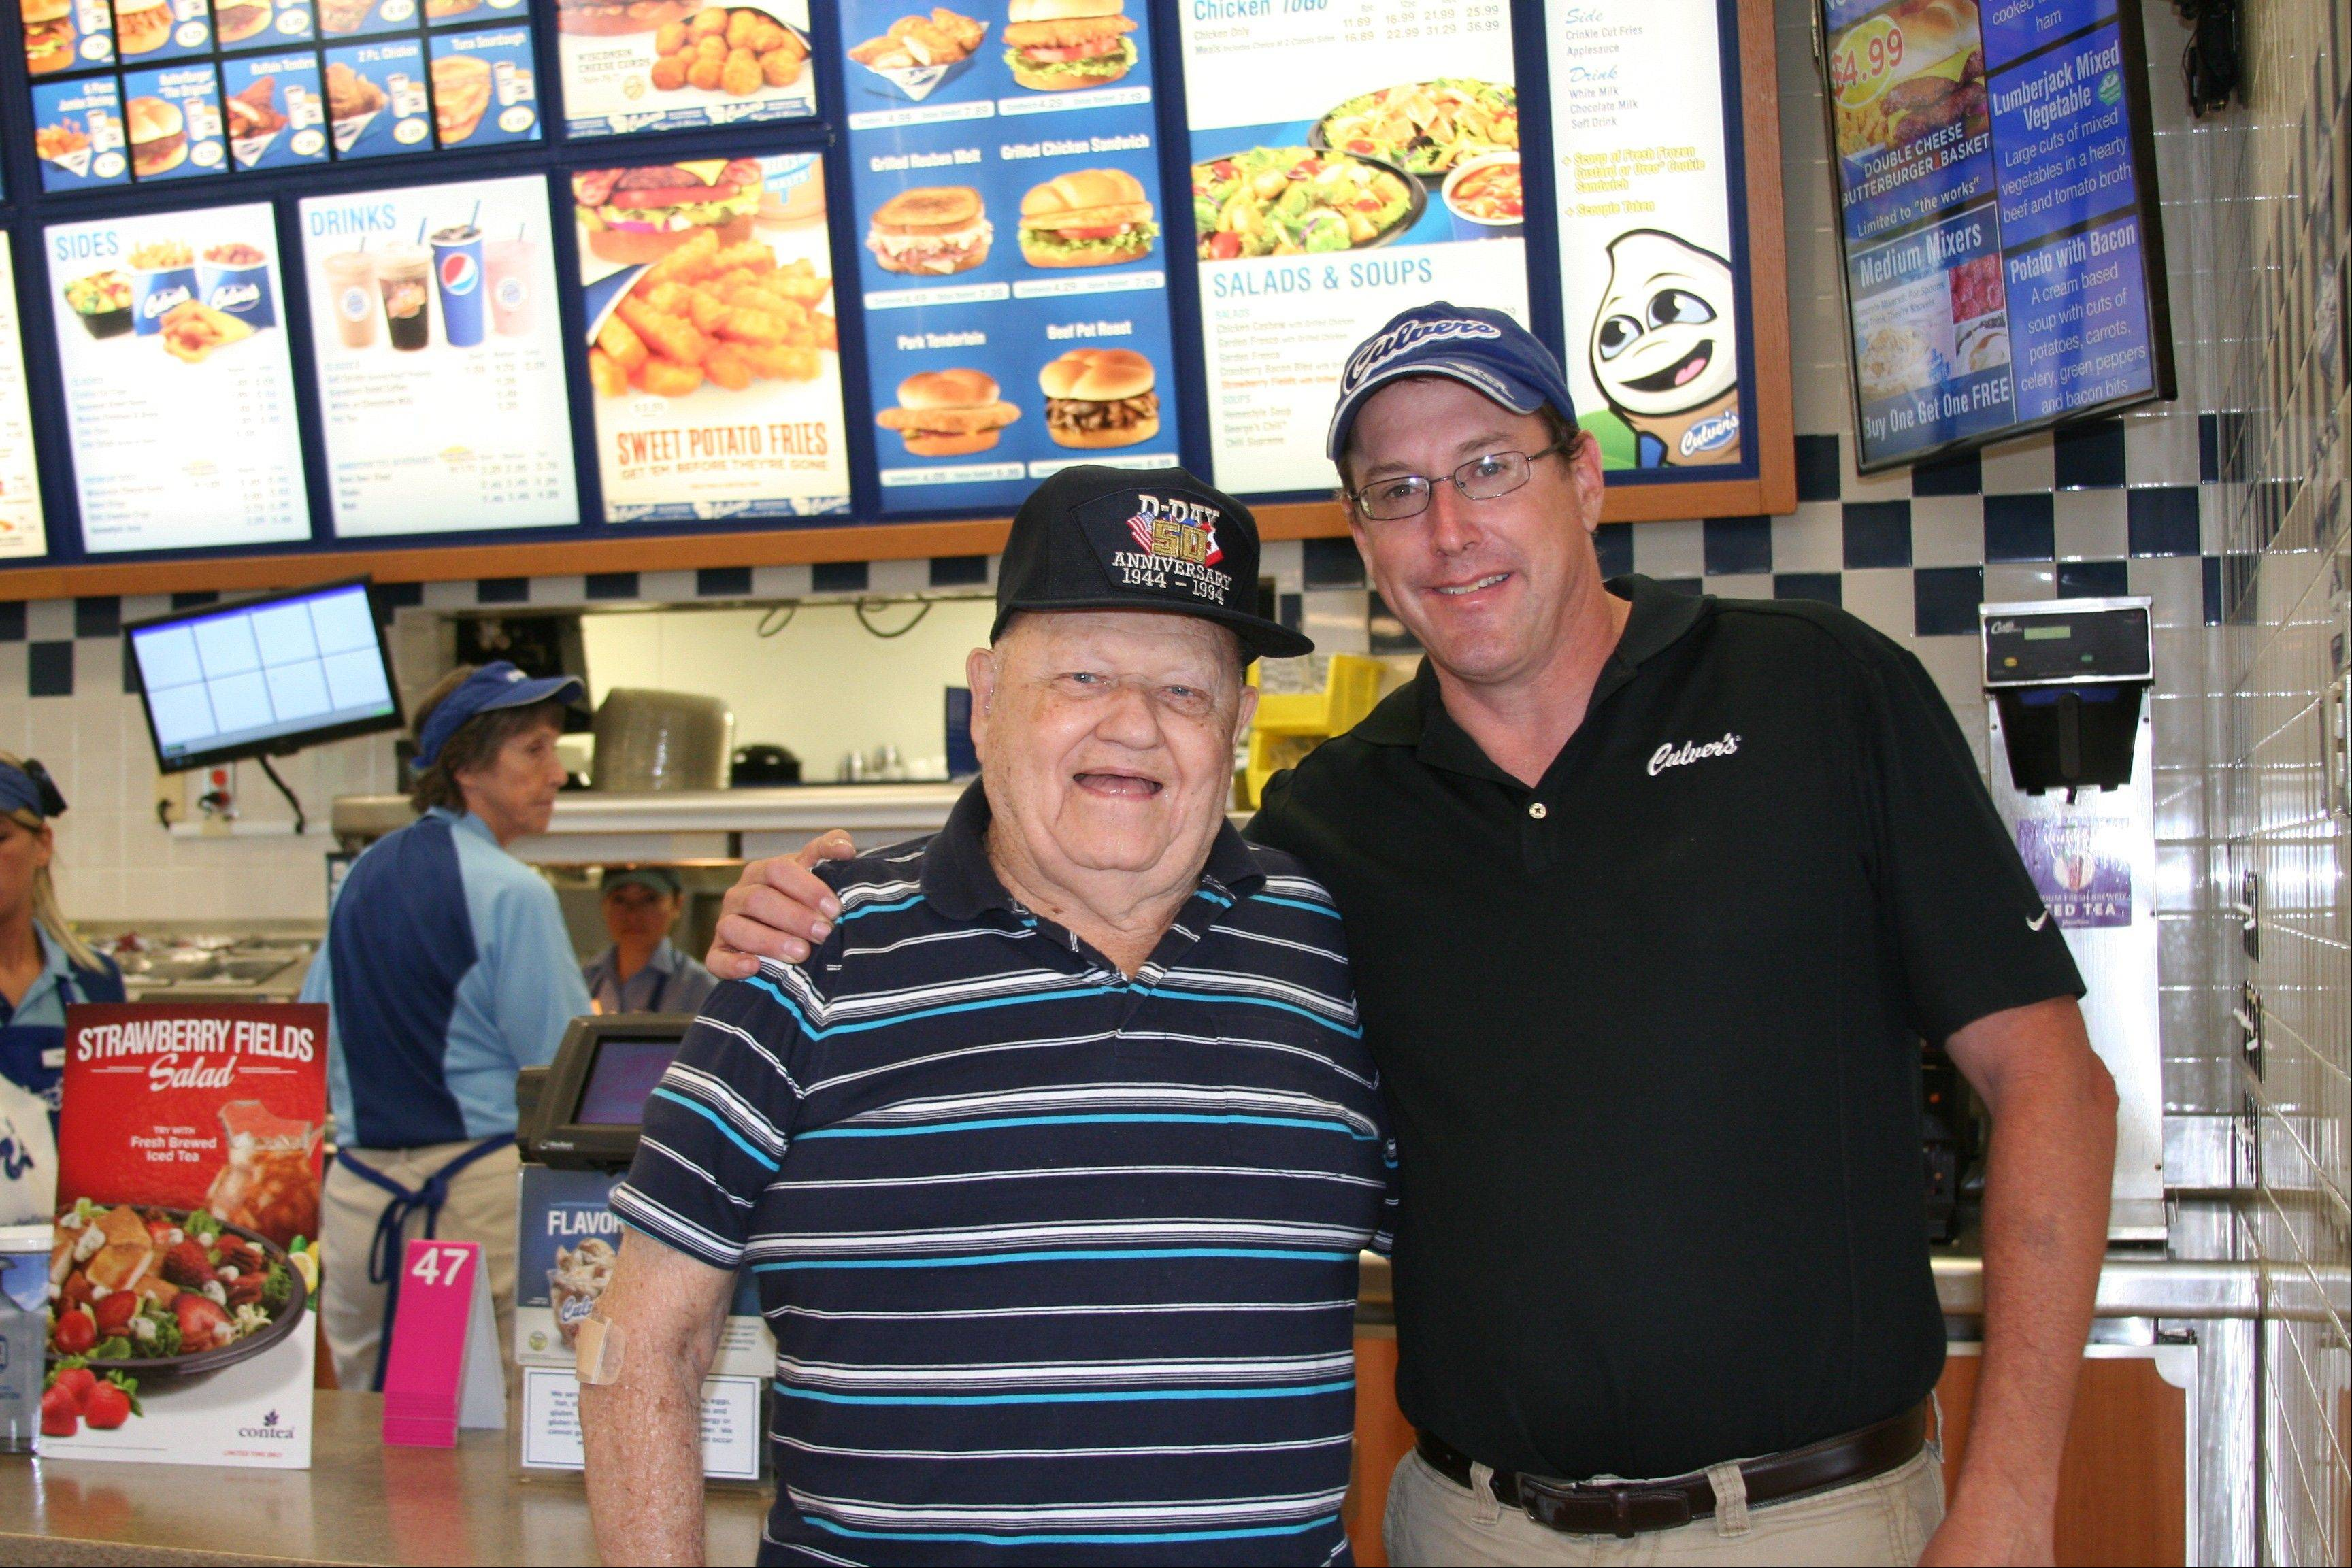 George Houchin of Waukegan and Culver's General Manager Jesse Jarrett in Zion.